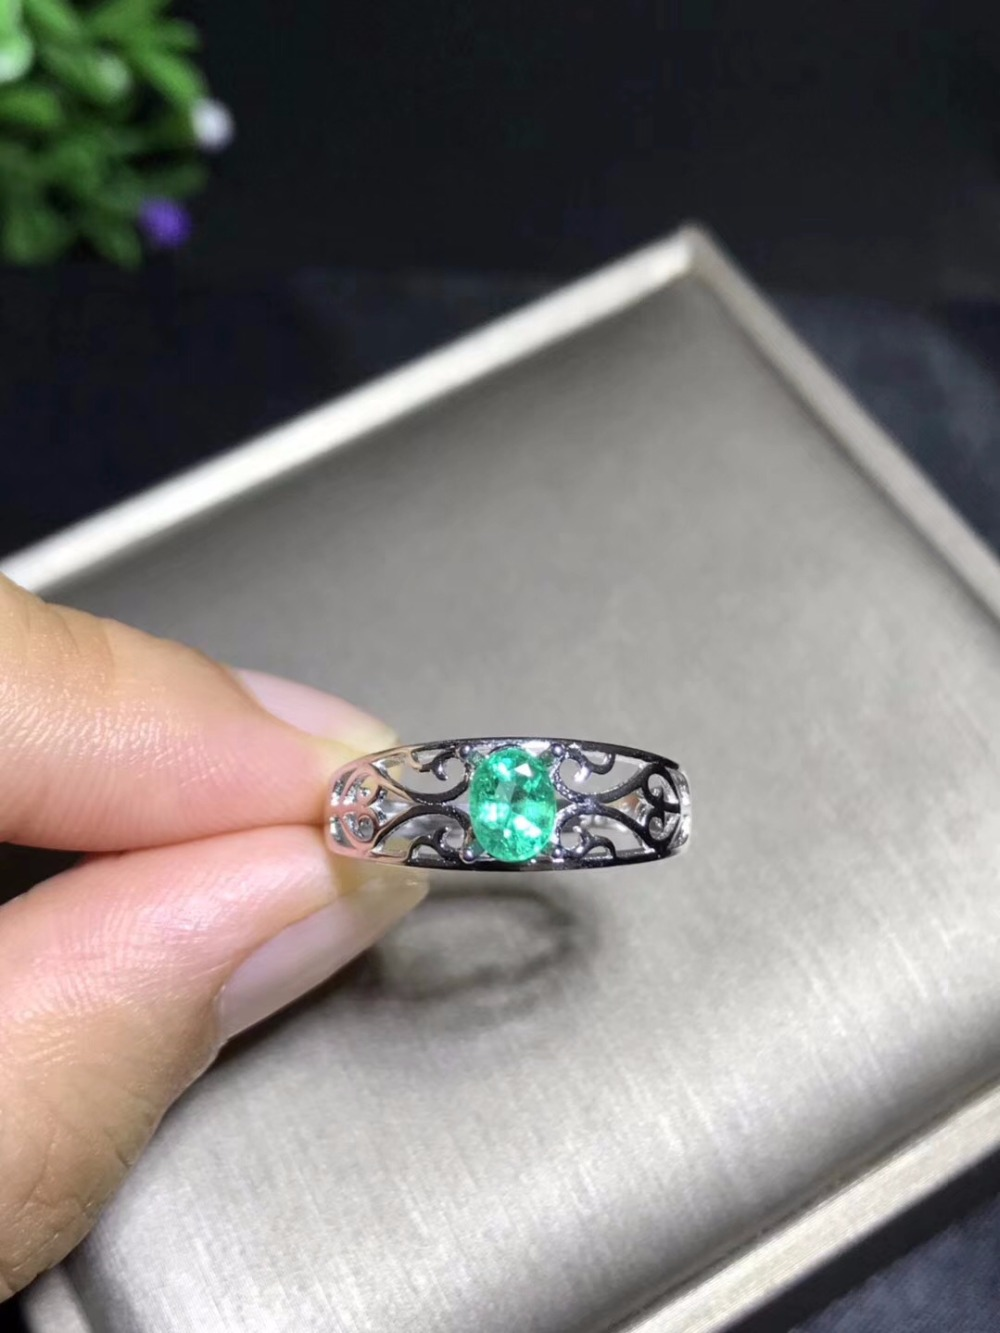 Natural emerald ring luxury style 4x6mm 925 silver Columbia origin 0.5ctNatural emerald ring luxury style 4x6mm 925 silver Columbia origin 0.5ct